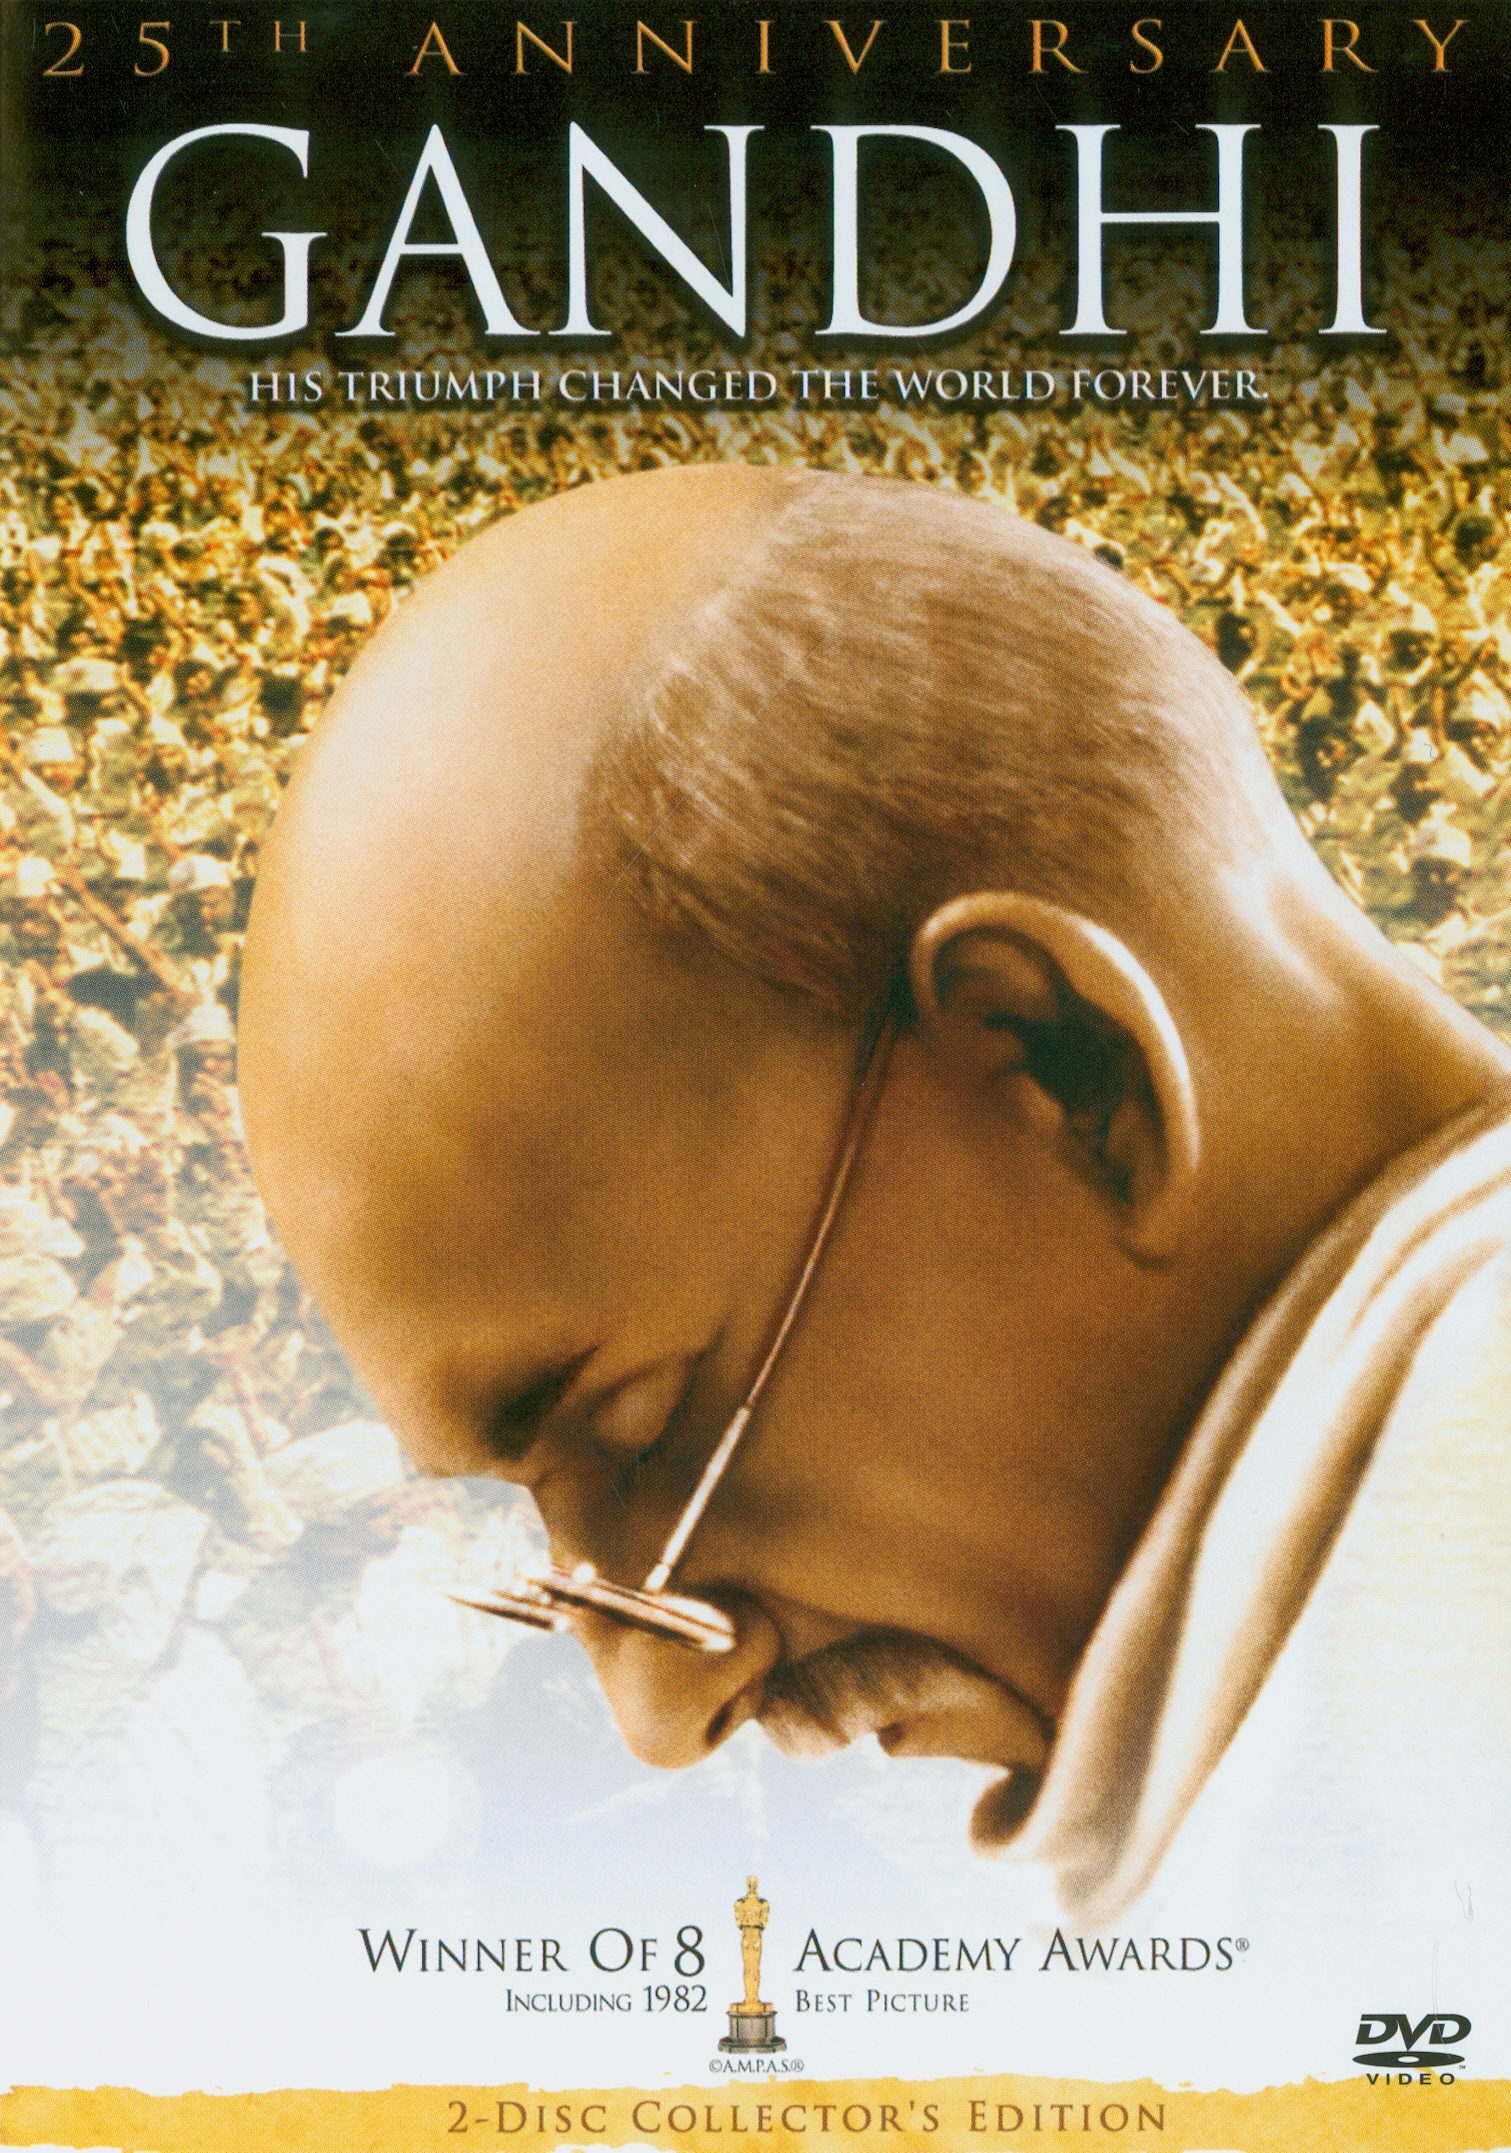 Gandhi[videorecording] /Columbia Pictures ; International Film Investors, Goldcrest Films International, National Film Development Corporation Ltd. of India, Indo-British Films Ltd. ; directors of photography, Billy Williams, Ronnie Taylor ; executive producer, Michael Stanley-Evans ; written by John Briley ; produced and directed by Richard Attenborough